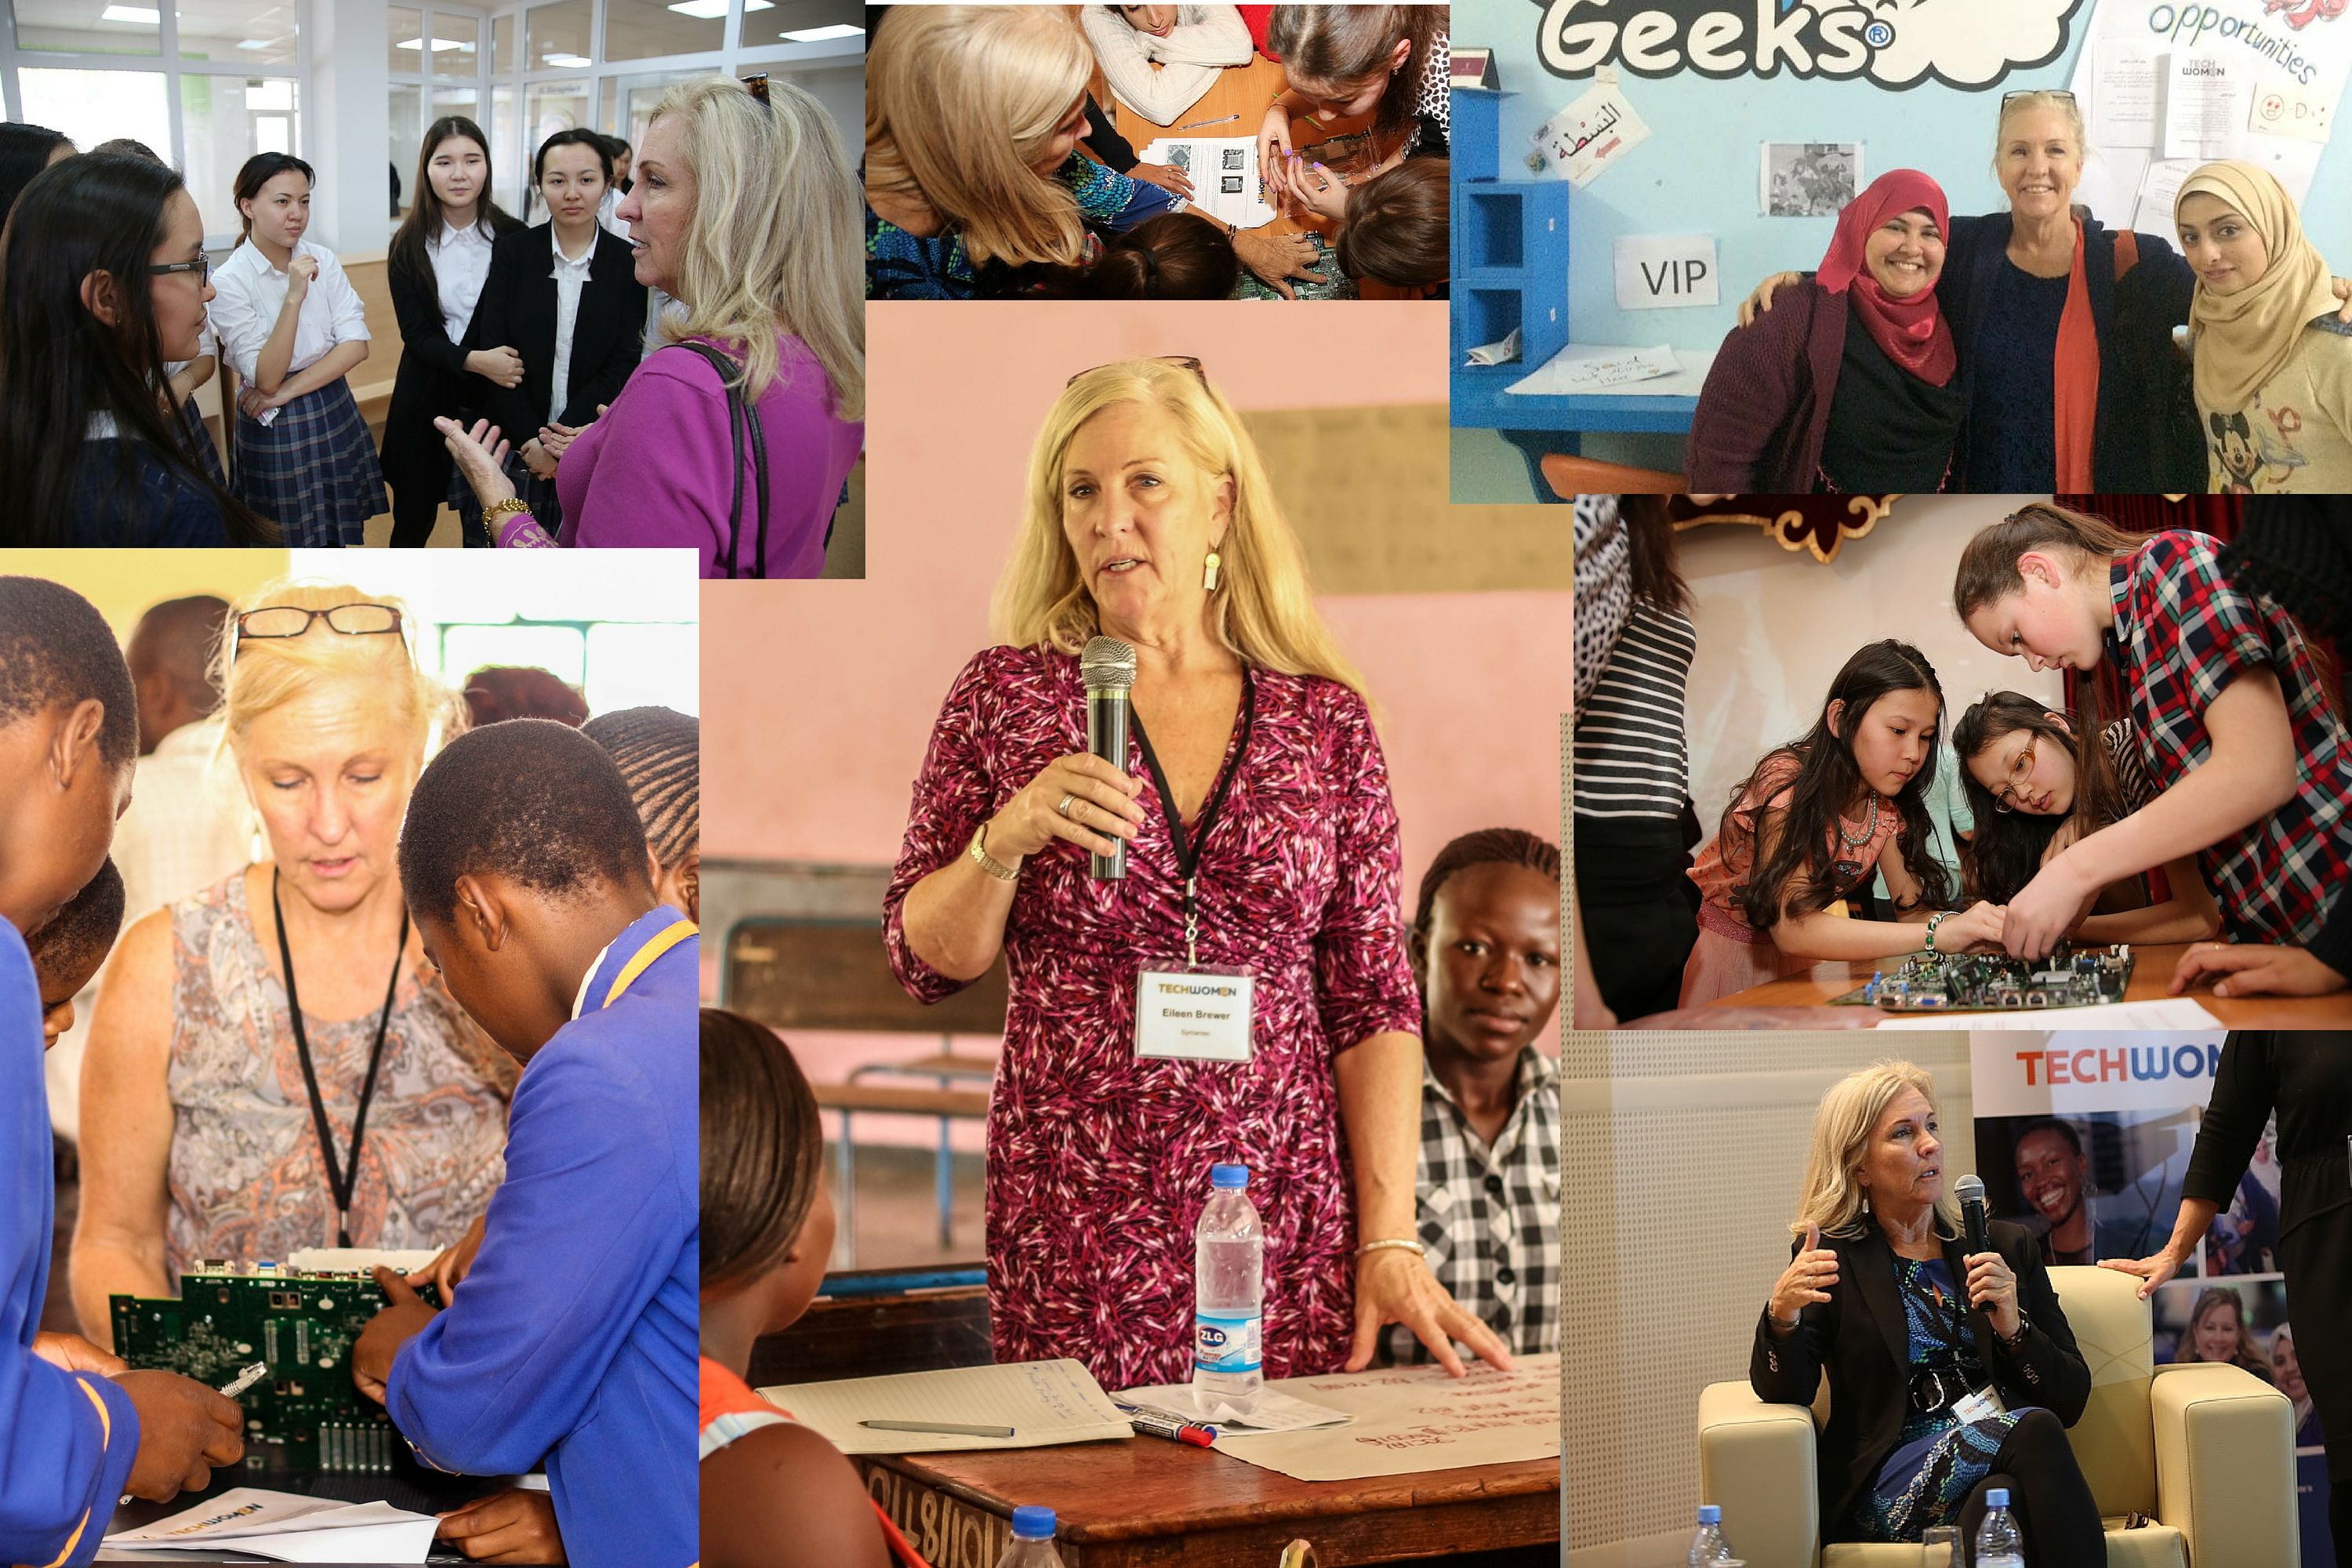 Eileen travels the world to help advance the status of women and girls.